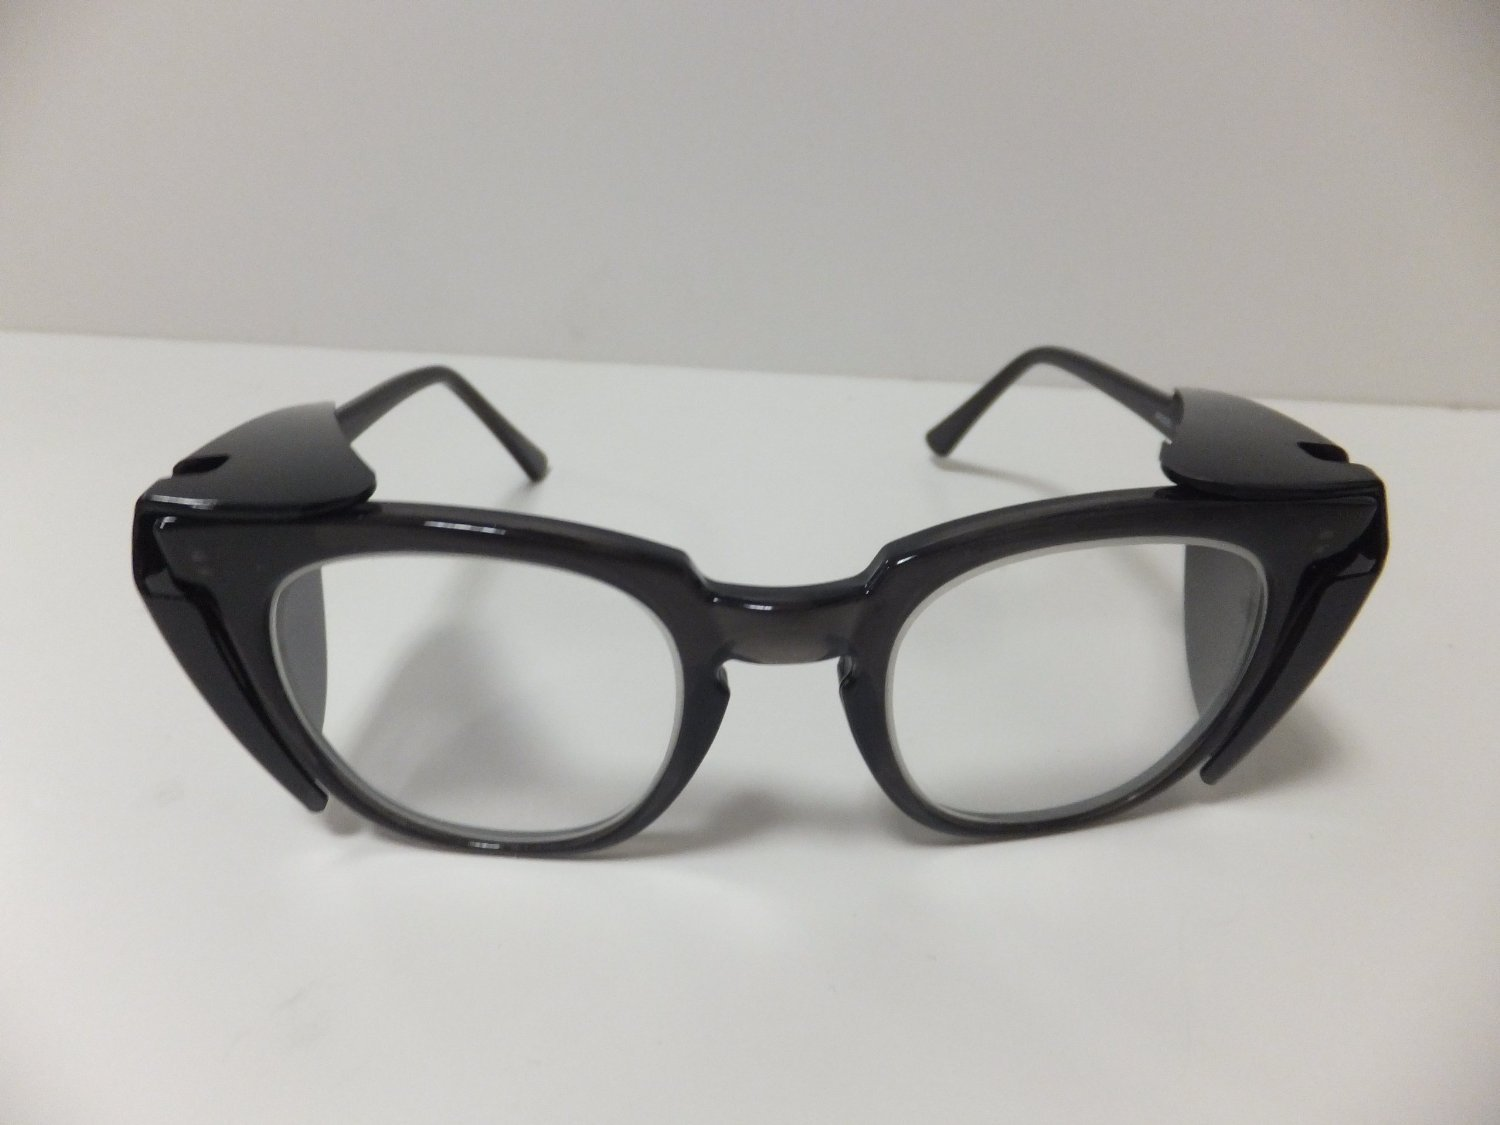 Radiation Safety Glasses in a Titmus Frame with .75 Pb Lead Lens ...